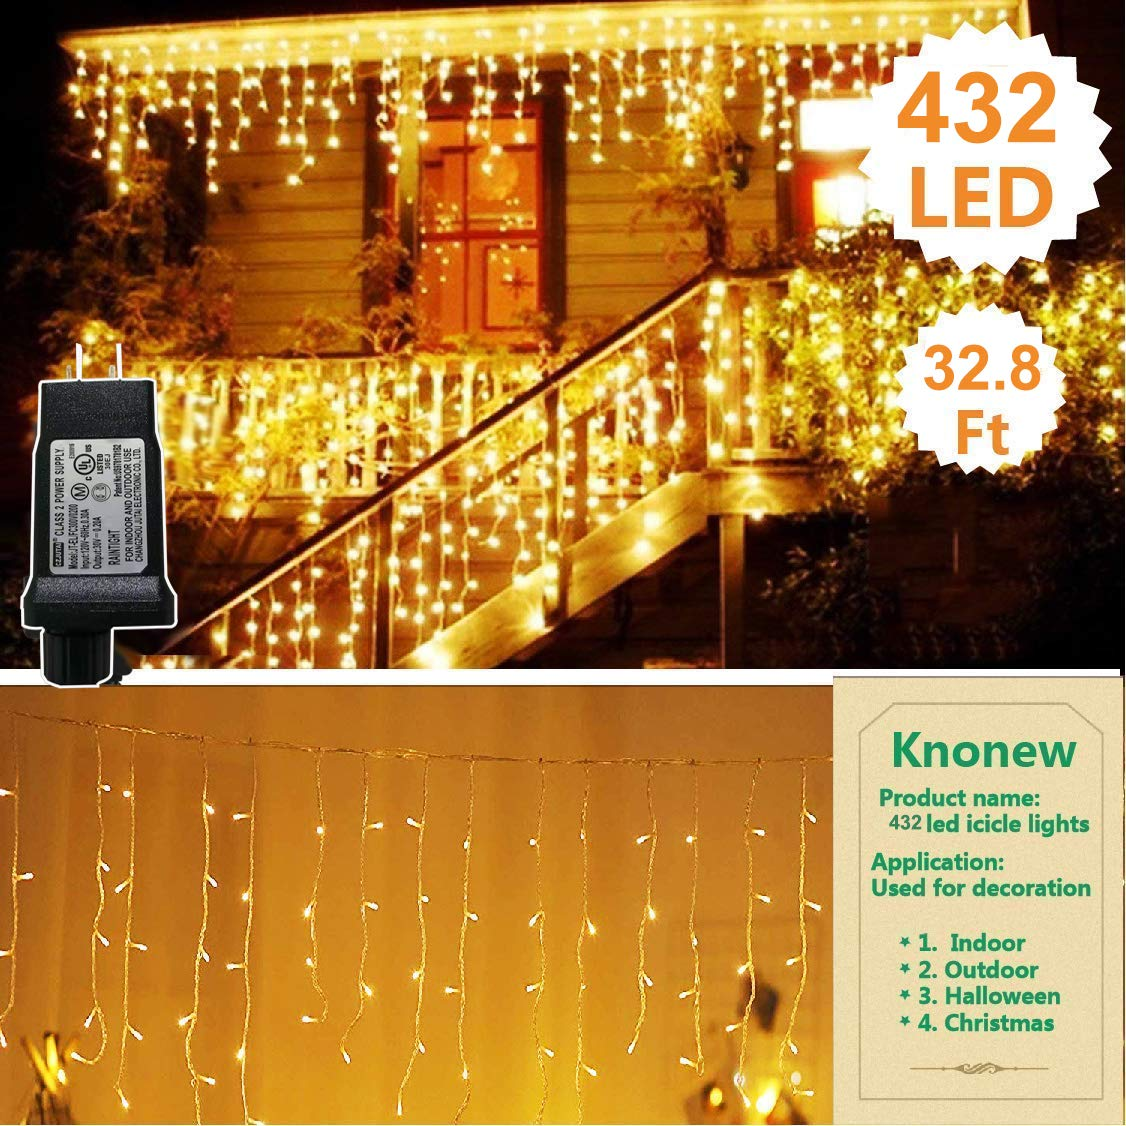 KNONEW LED Icicle Lights, 432 LEDs, 32.8ft, 8 Modes, Curtain Fairy Light, LED String Light for Wedding/Christmas/Halloween/Thanksgiving/Easter/Party Backdrops (Warm White)